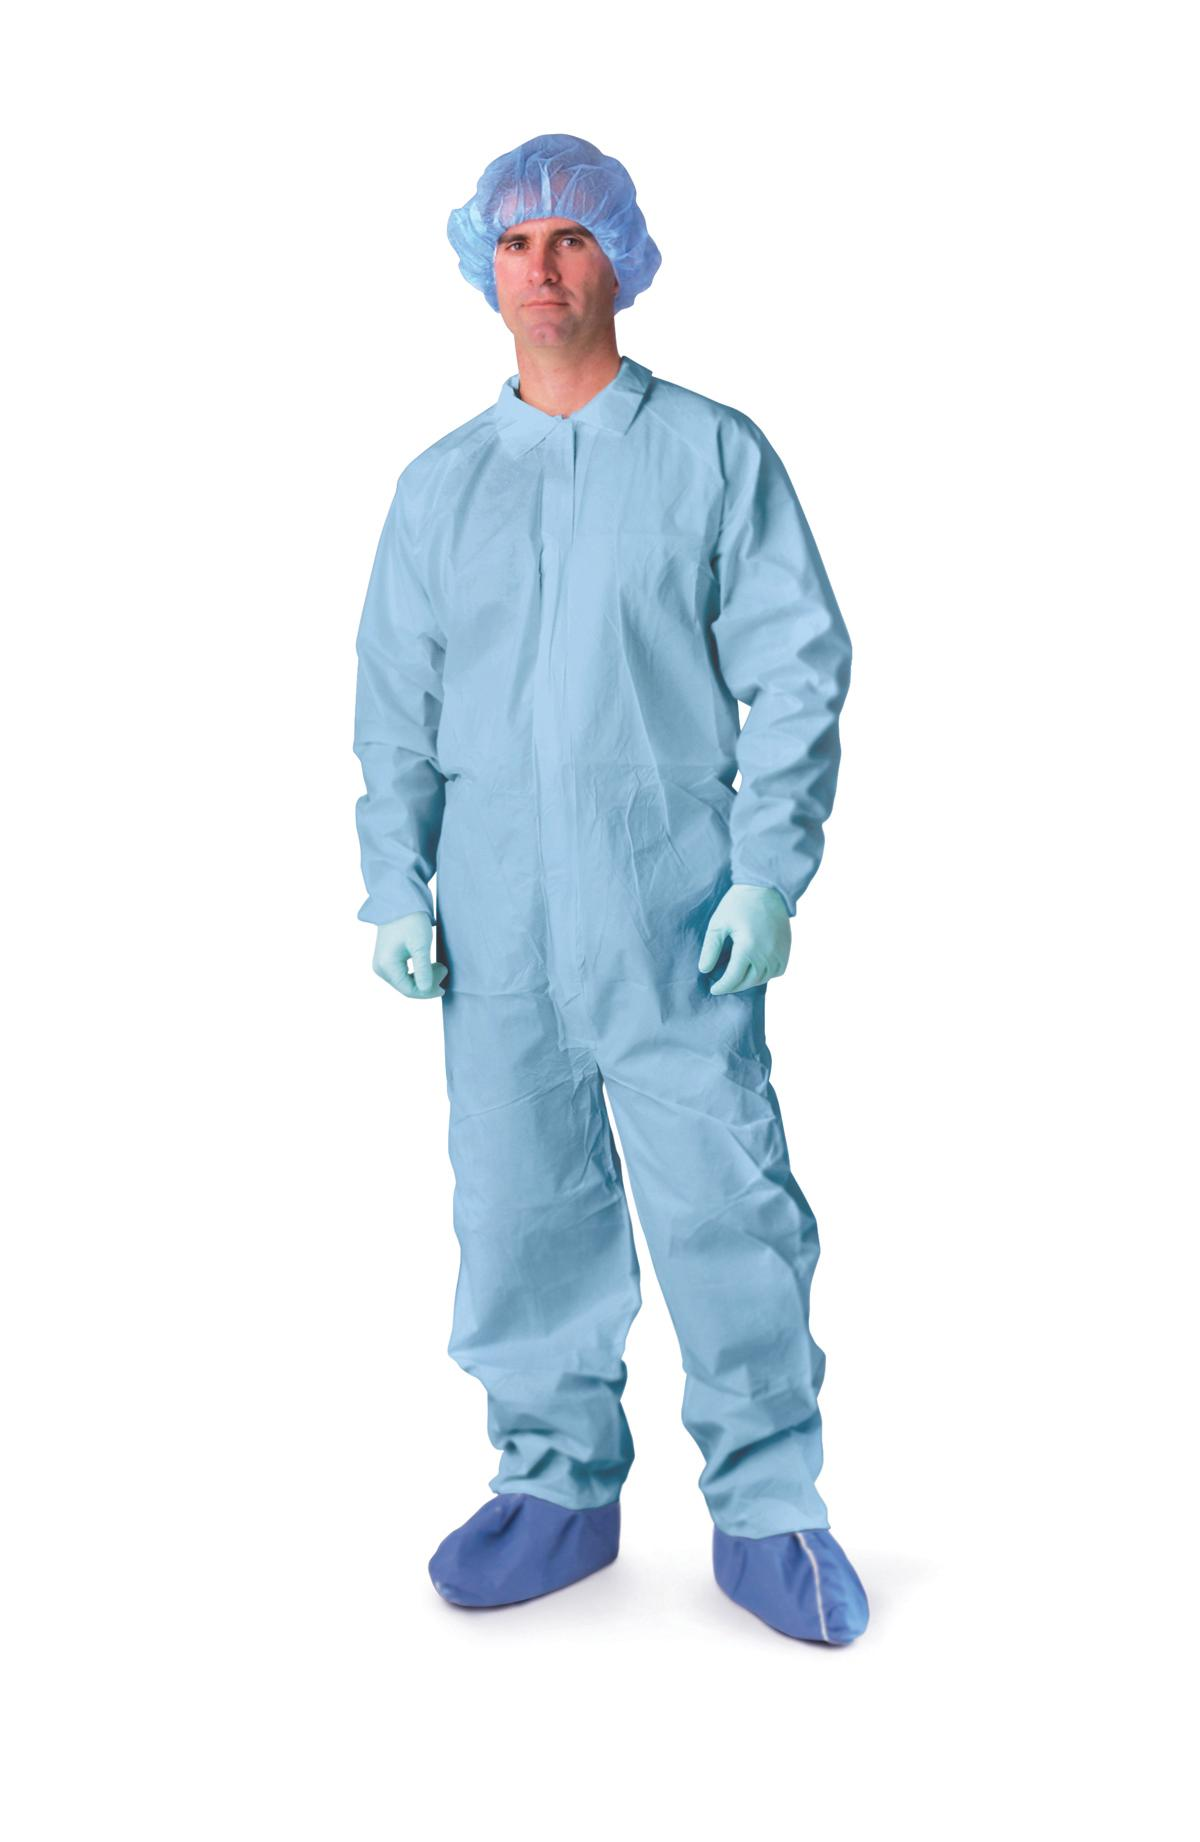 Why wear a surgical gown?